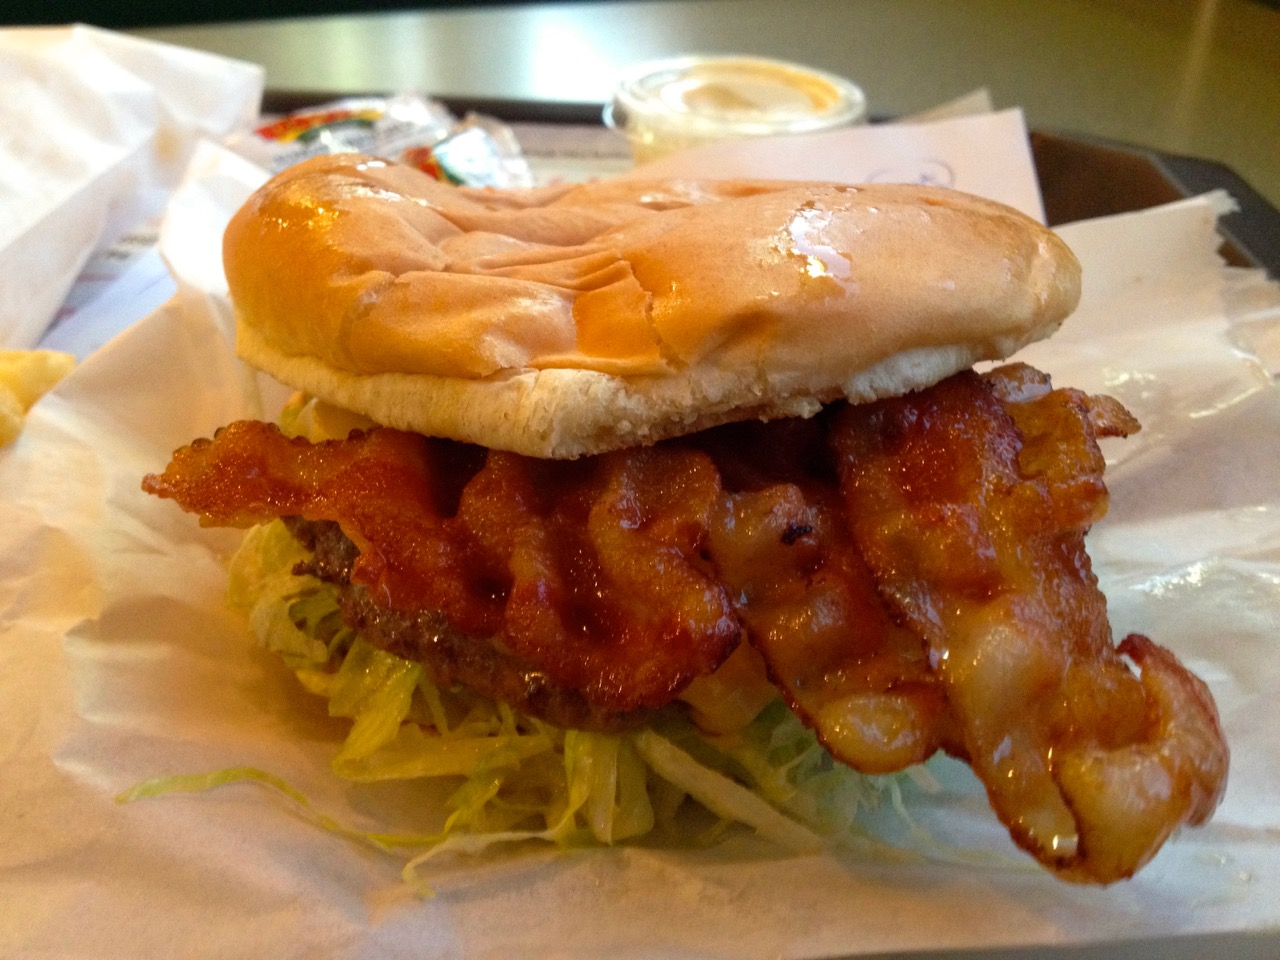 A Simple Bacon Cheeseburger at Zips in Kennewick – June 30 2019